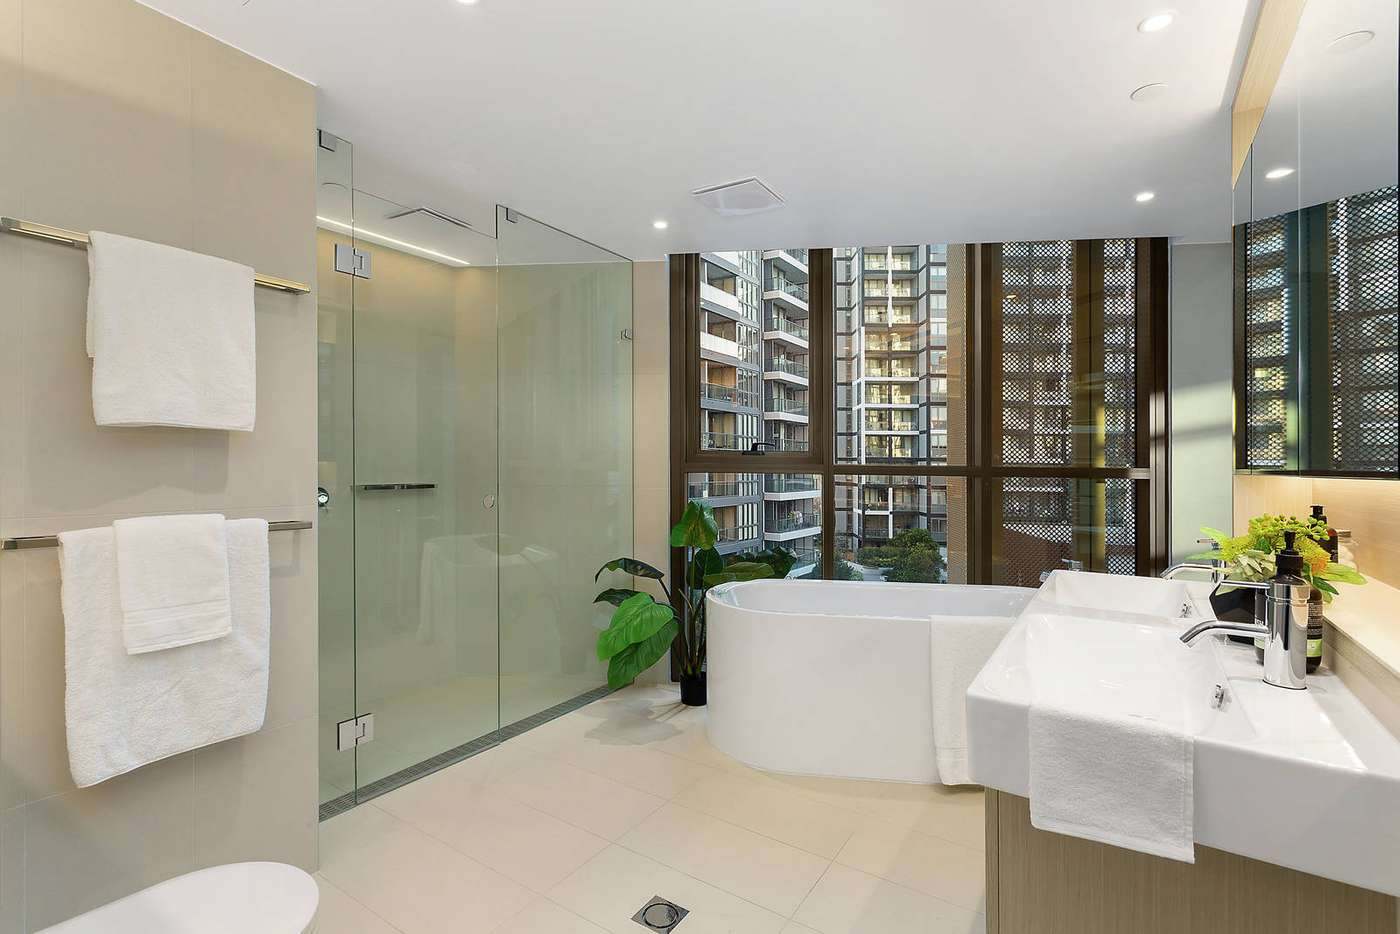 Fifth view of Homely apartment listing, 801/70 Tumbalong Boulevard, Sydney NSW 2000